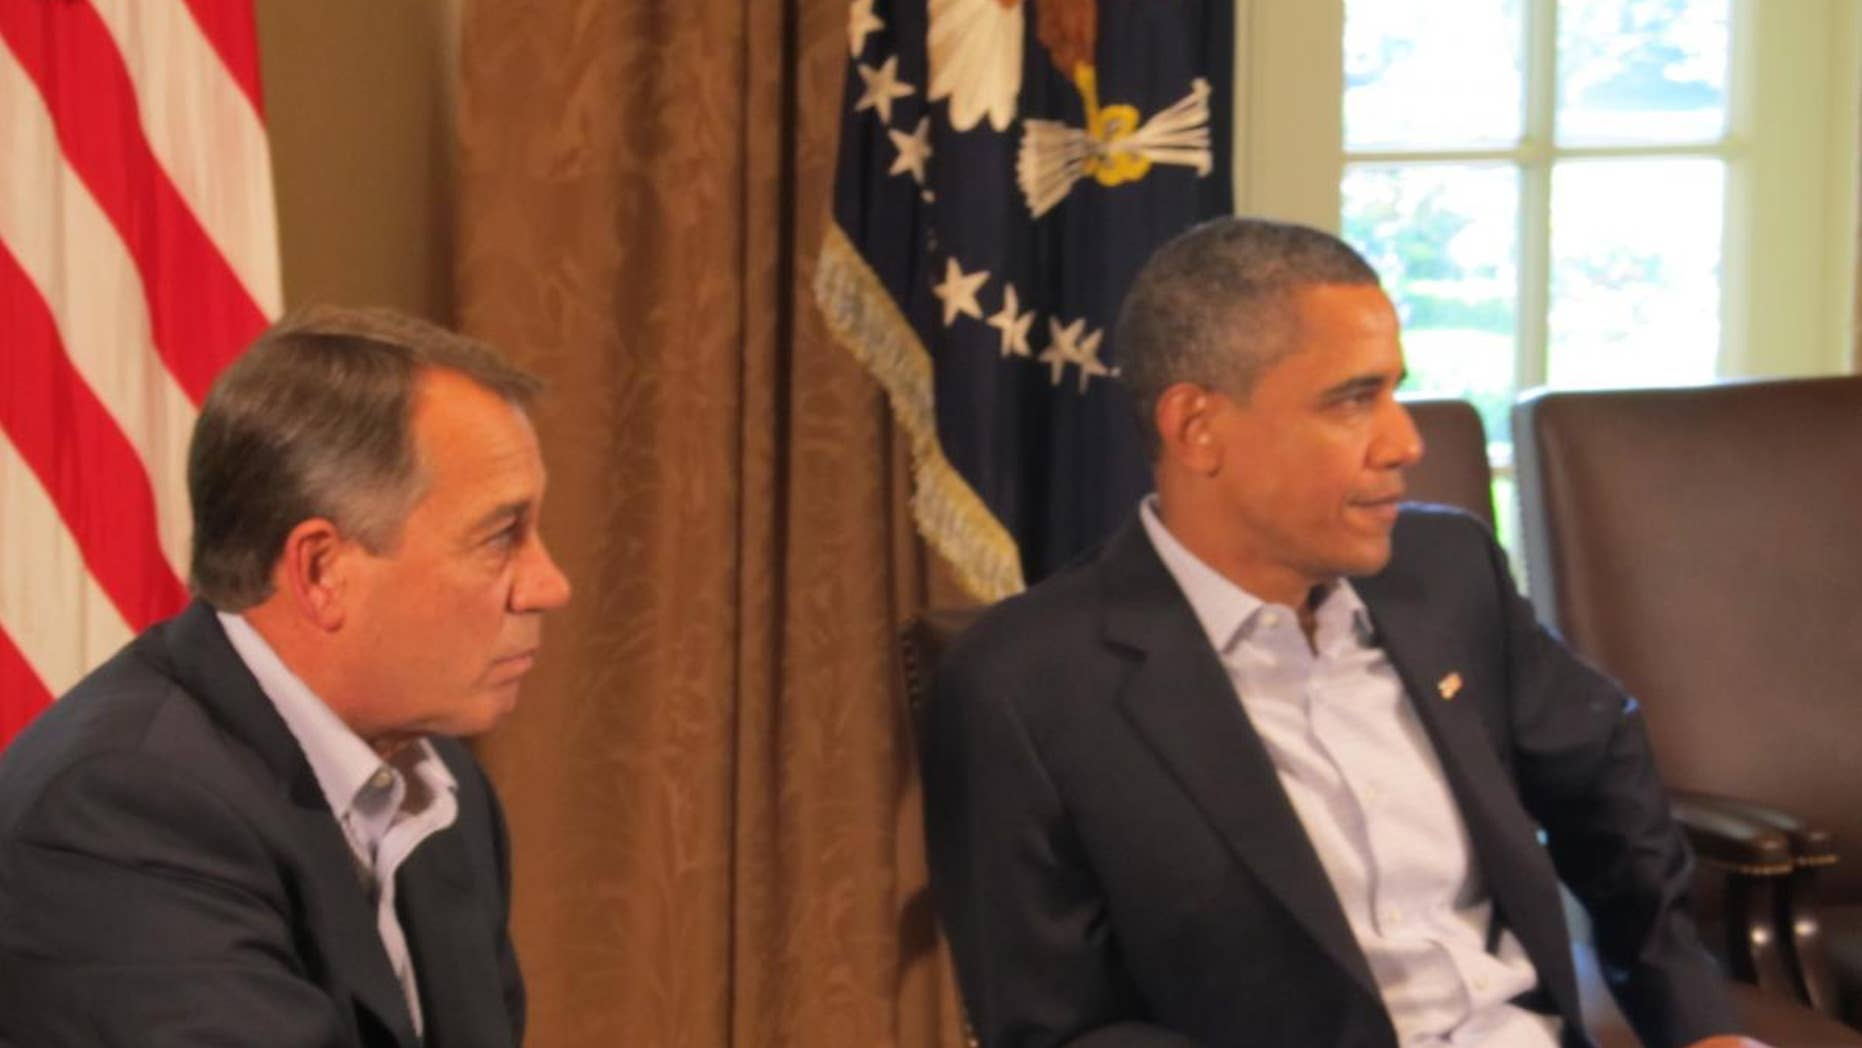 House Speaker John Boehner and President Obama Saturday, July 23, 2011 in the Cabinet Room at the White House/Travel Pool photo.